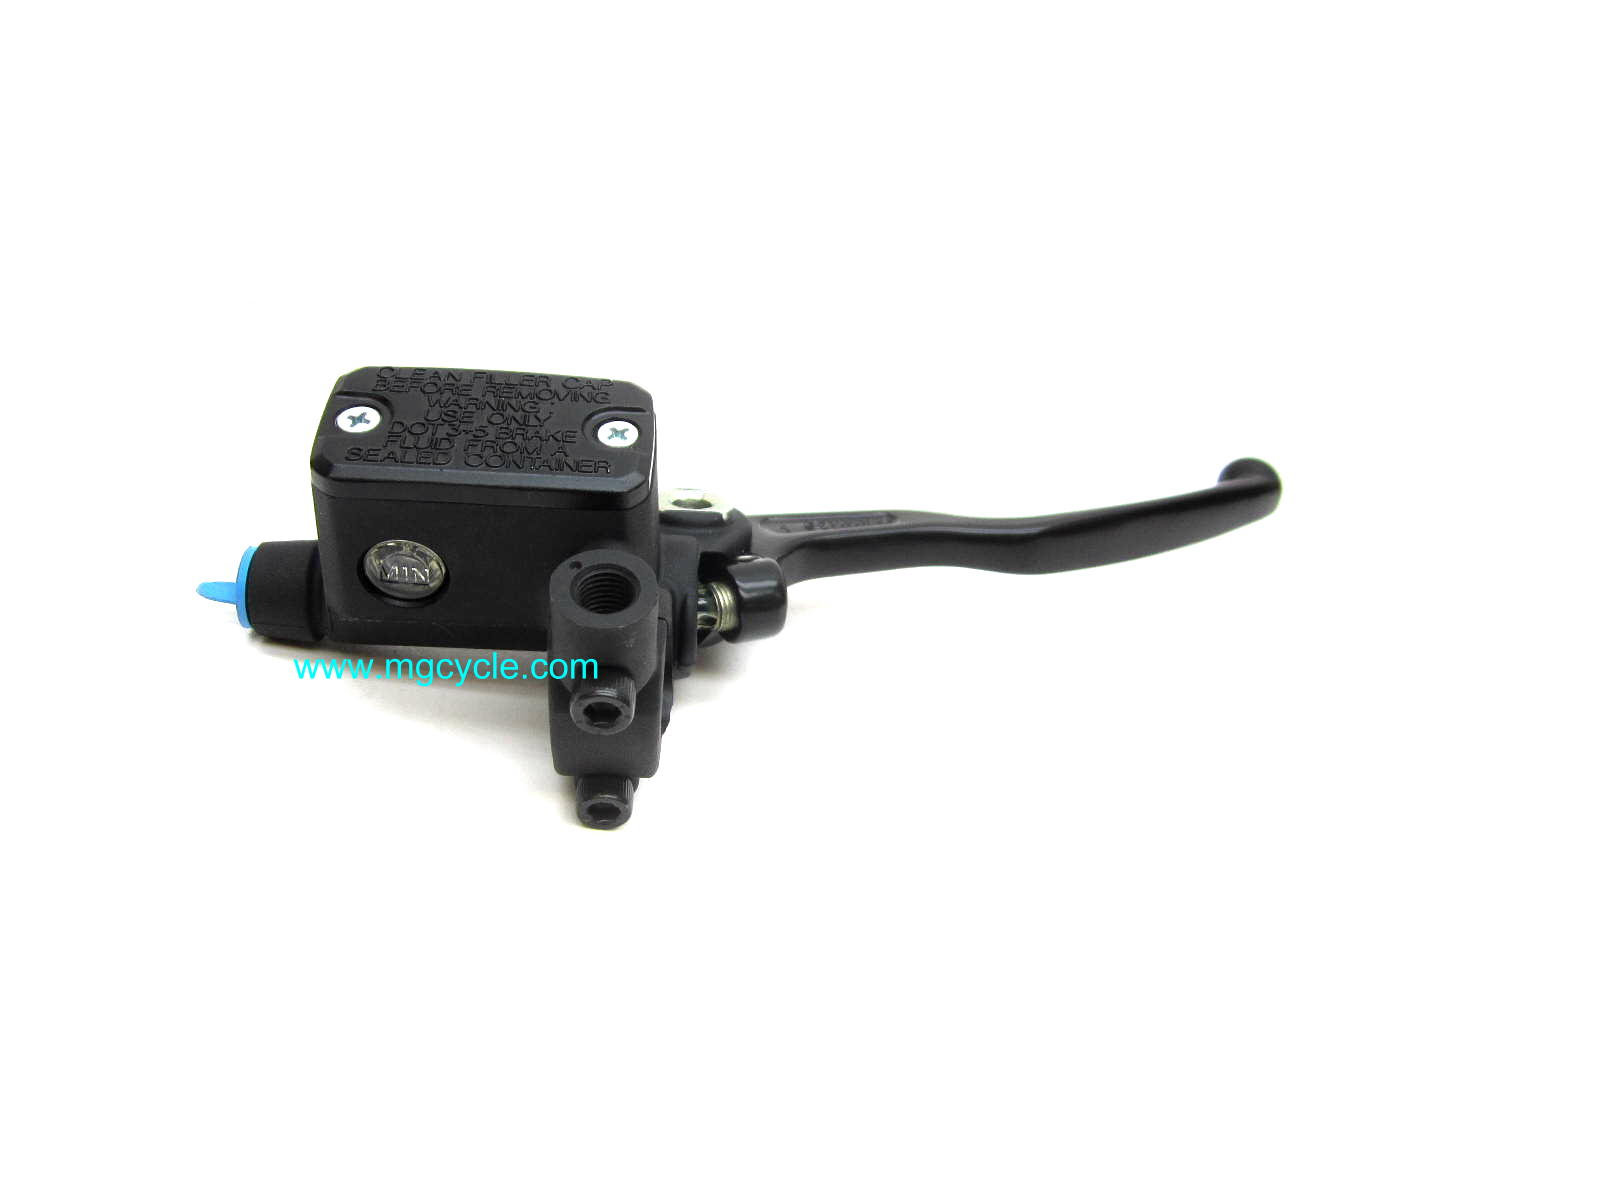 Brembo 12mm master cylinder with switch, black lever, rect.